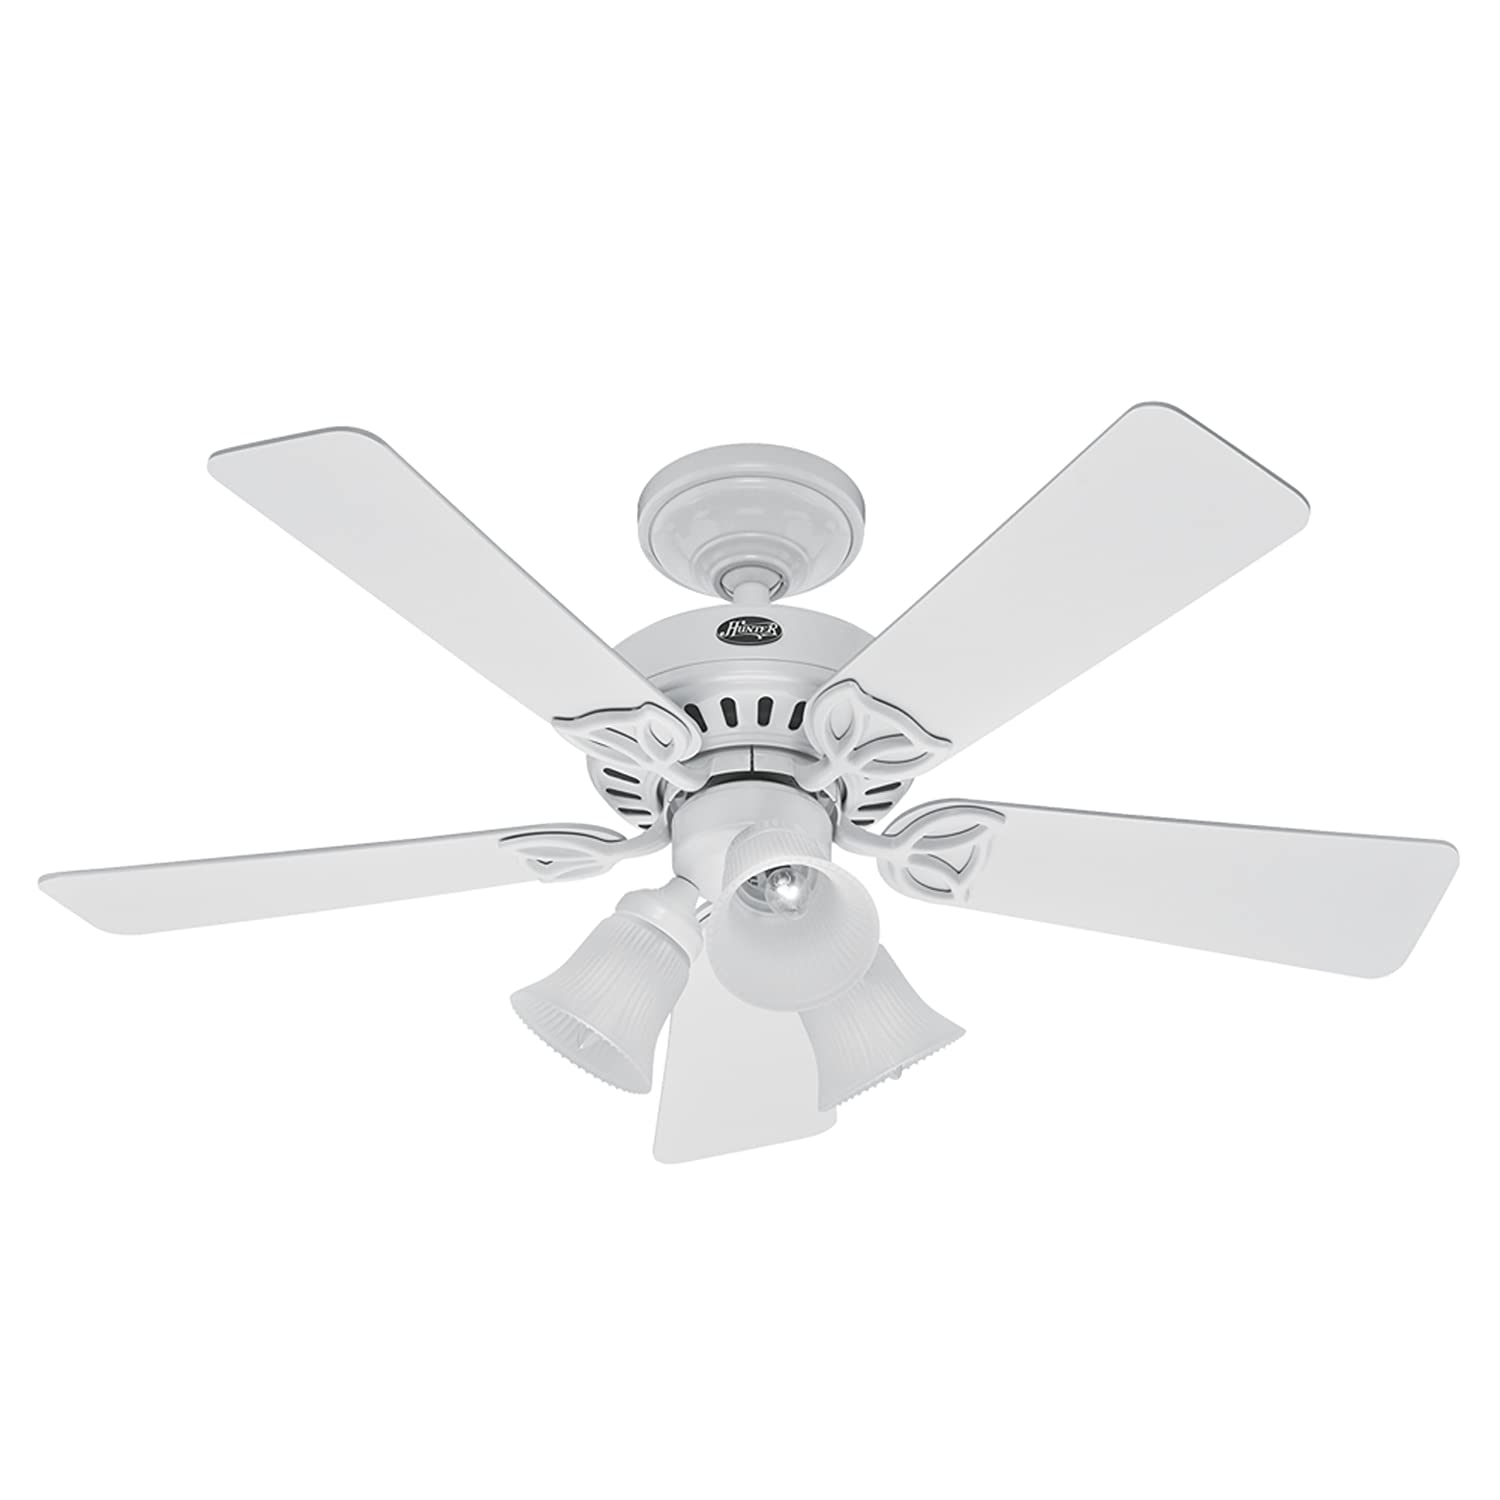 Hunter 20436 beacon hill three light 42 inch five blade ceiling fan hunter 20436 beacon hill three light 42 inch five blade ceiling fan white with frosted globes white ceiling fan with remote amazon aloadofball Image collections